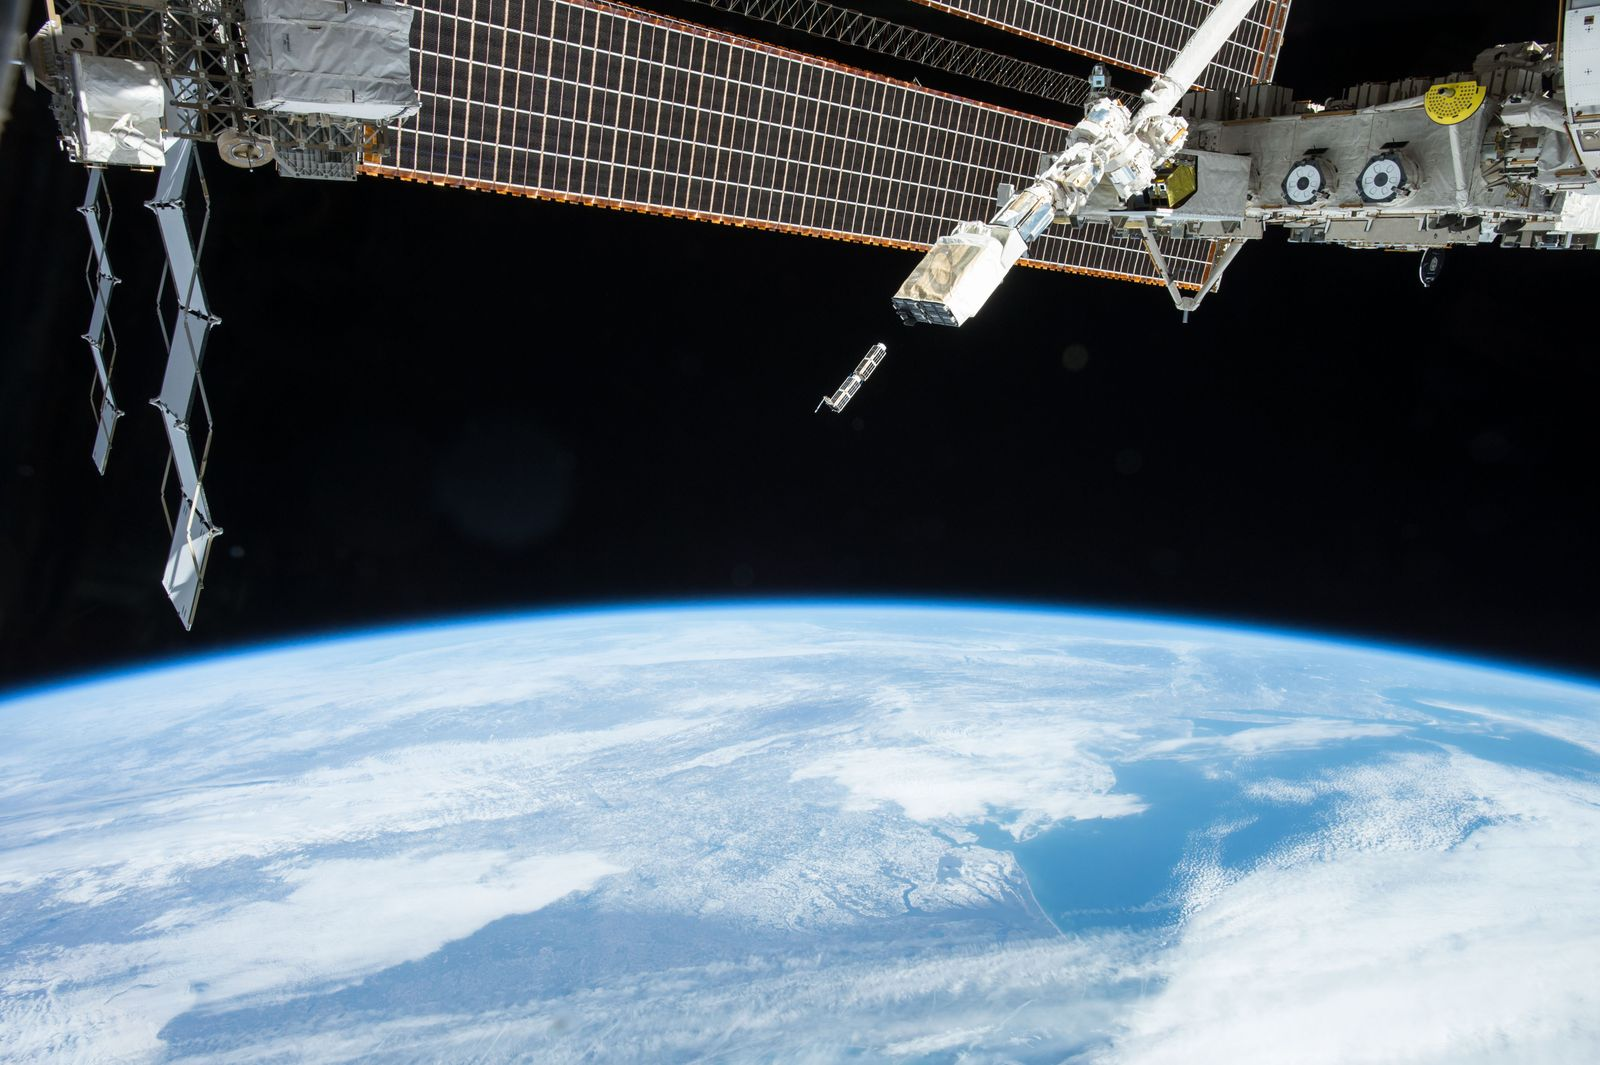 Nanorack deployment from the International Space Station